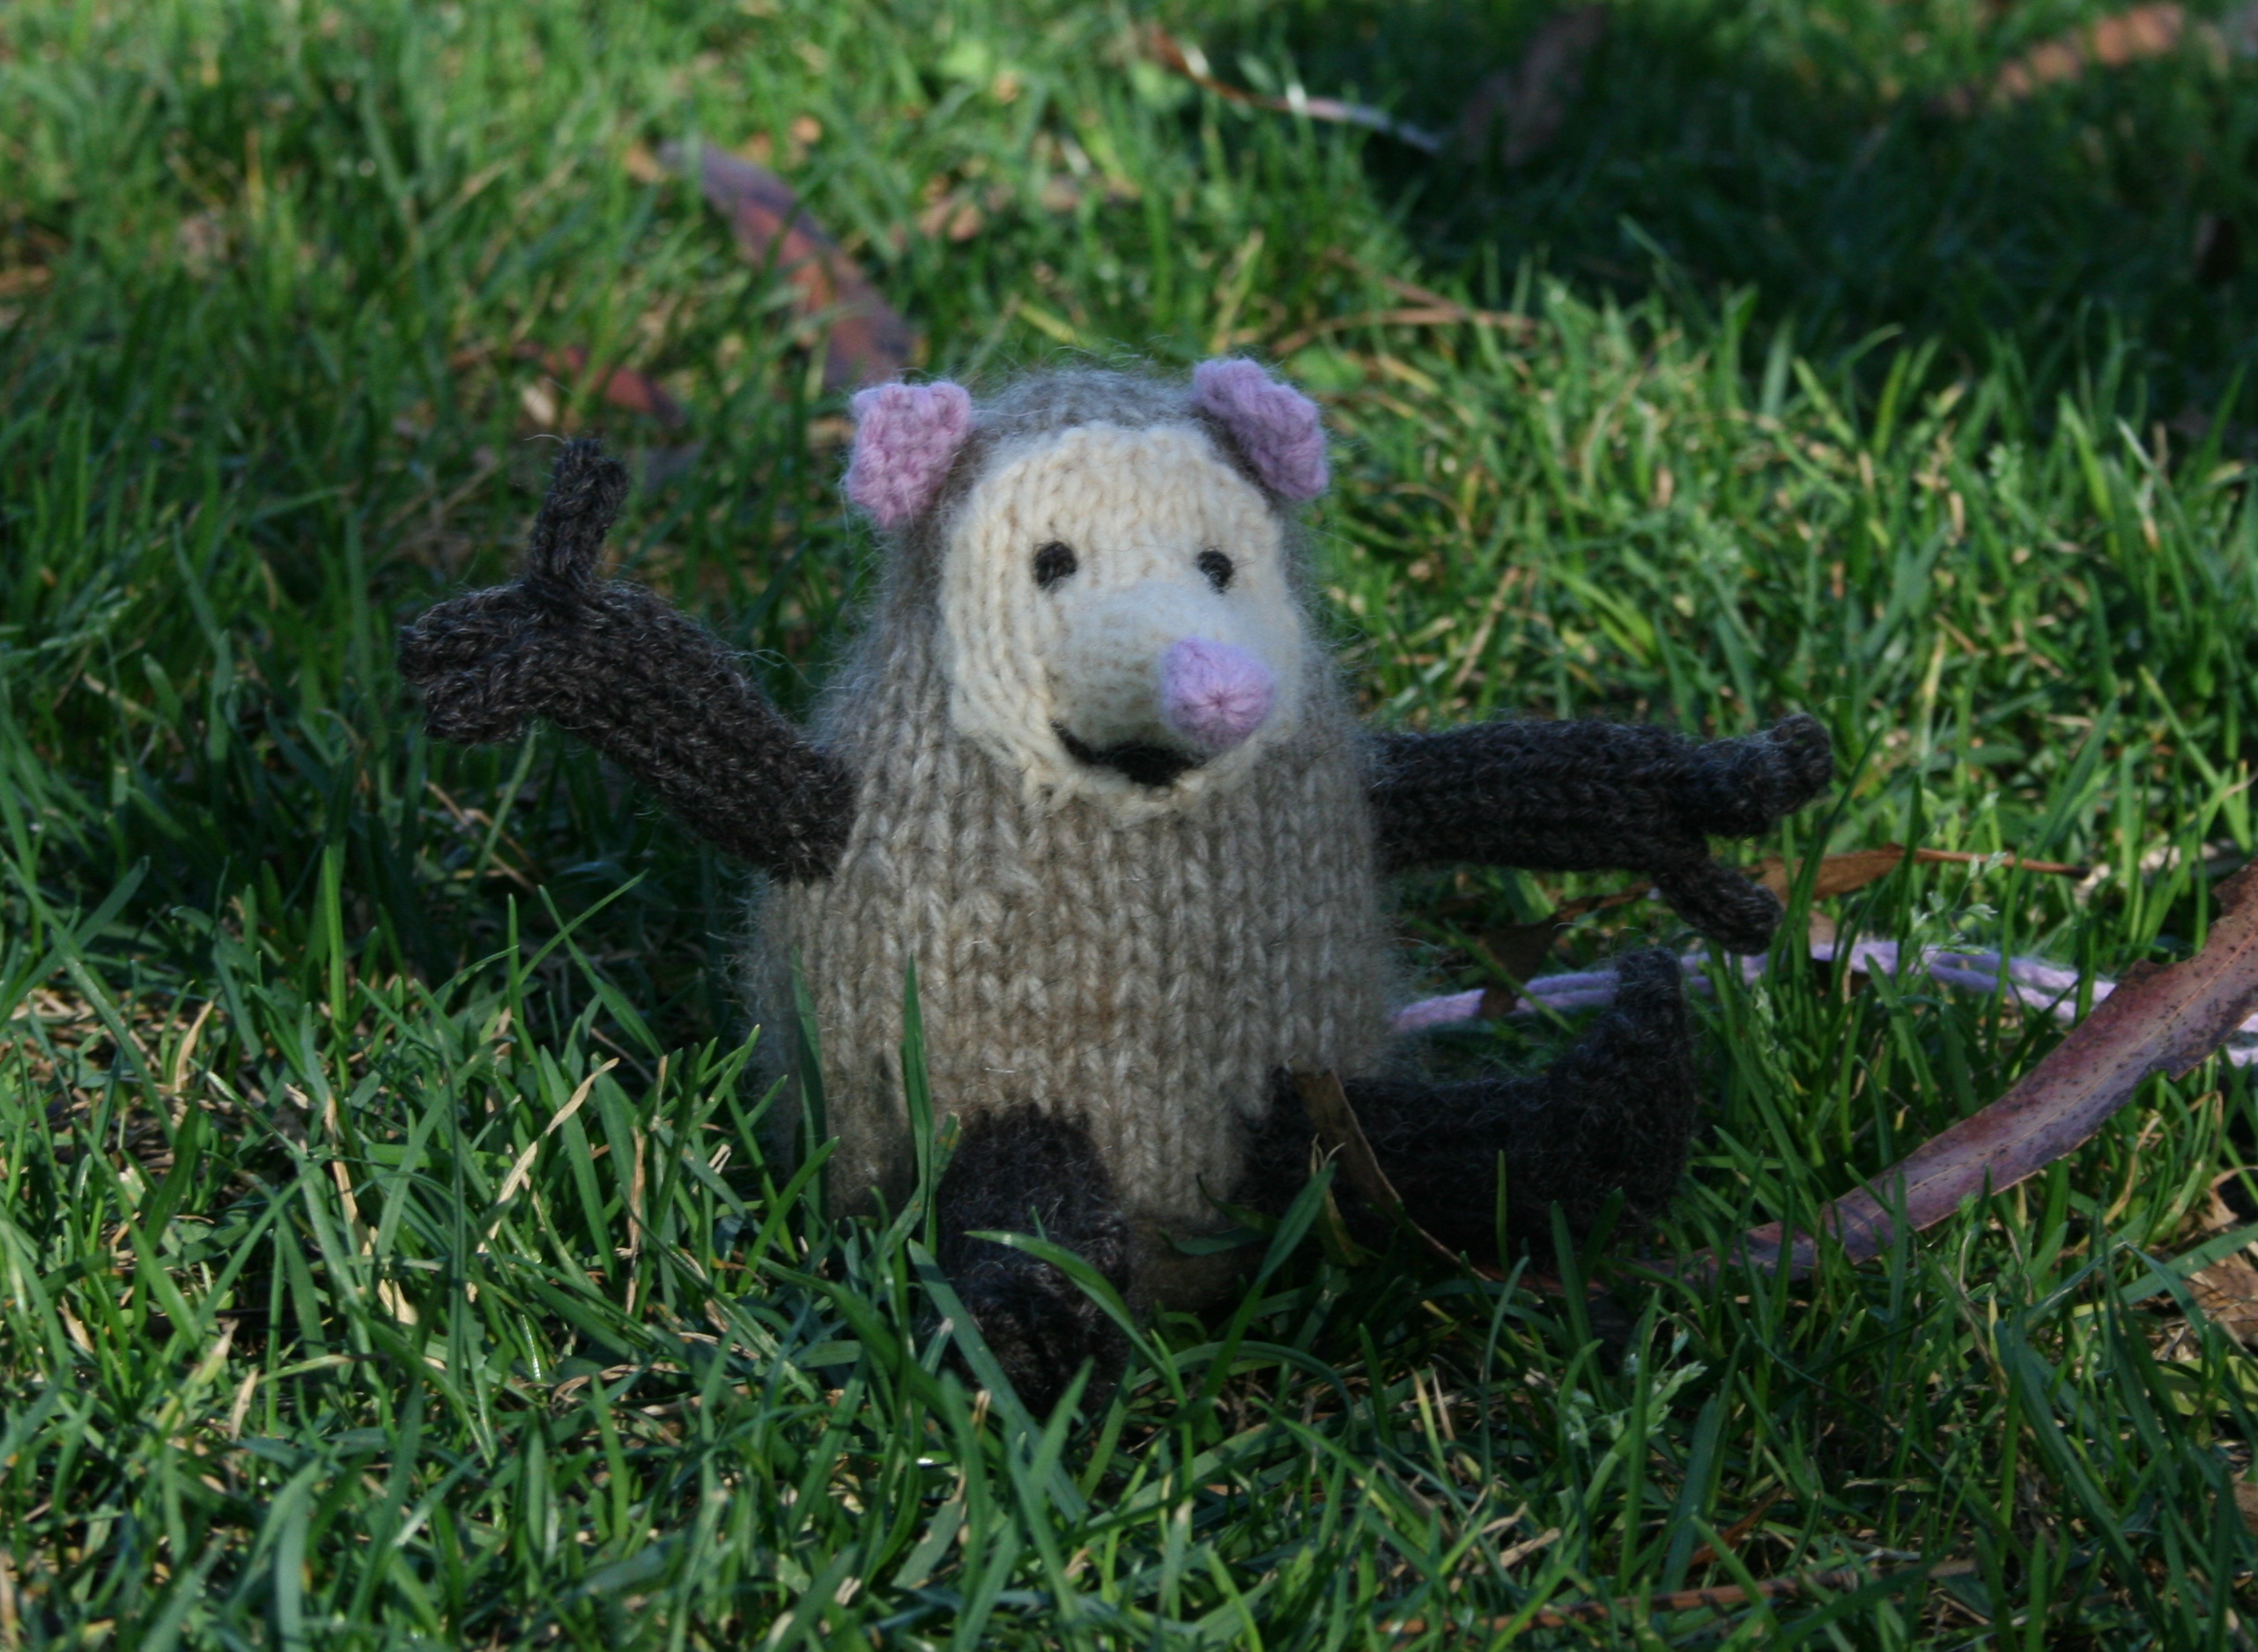 Knit possum Flickr - Photo Sharing!